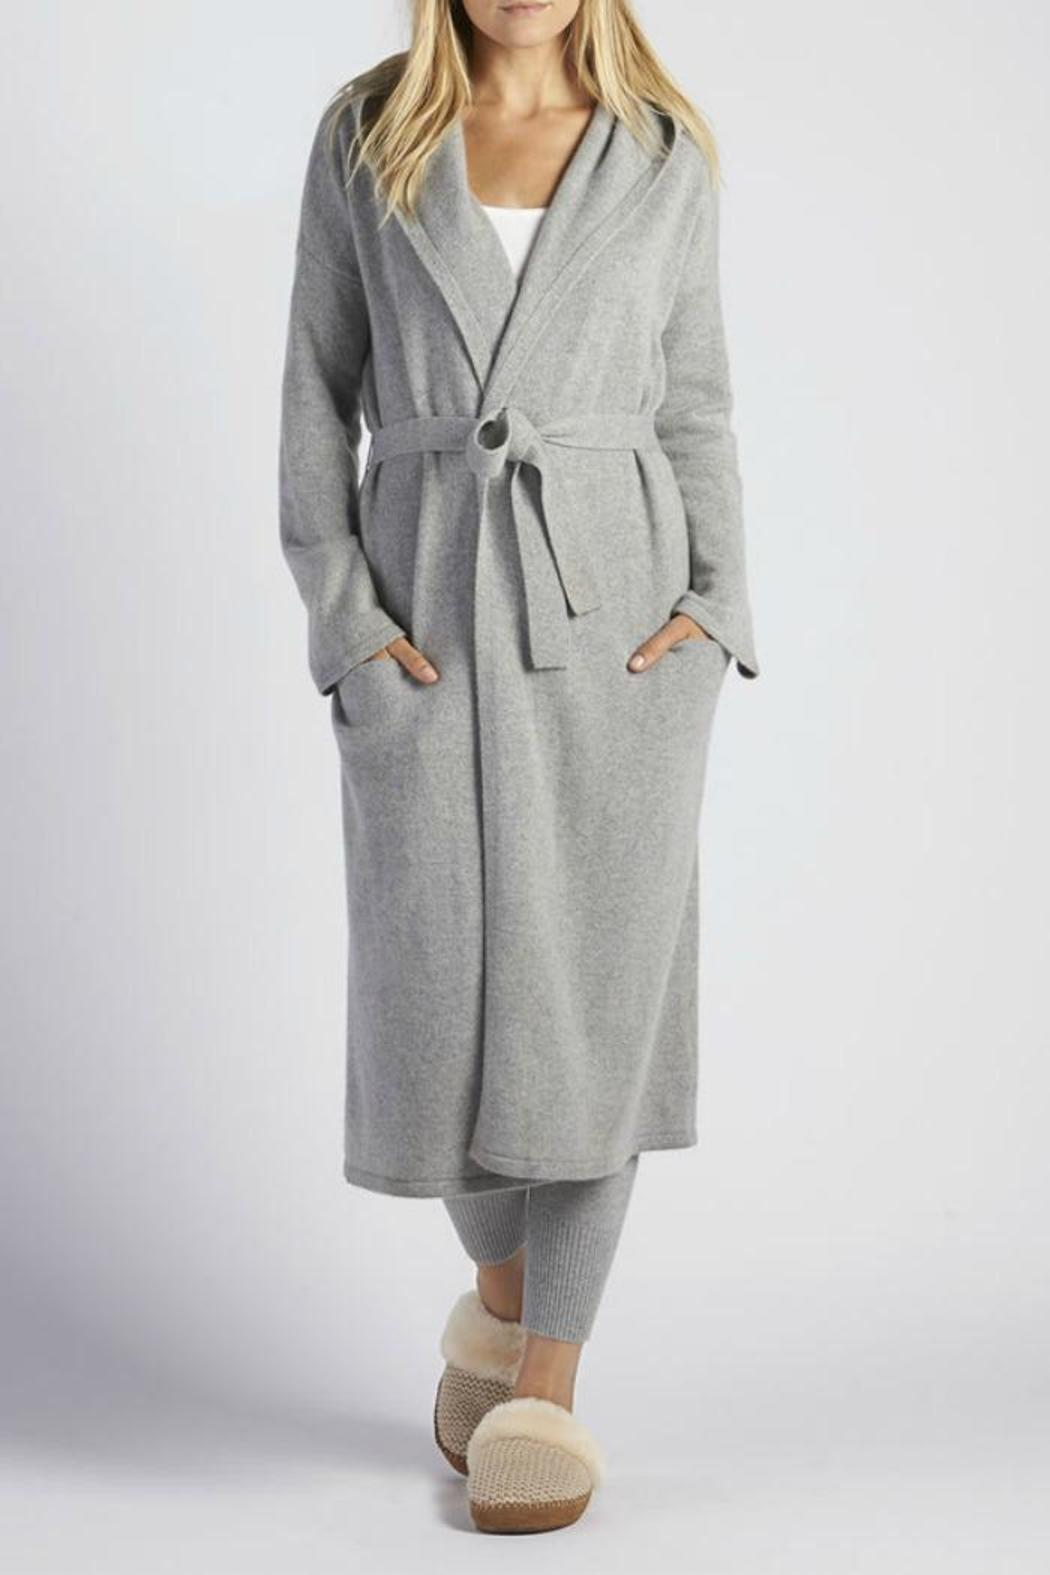 Ugg Australia Evie Cashmere Robe From Massachusetts By